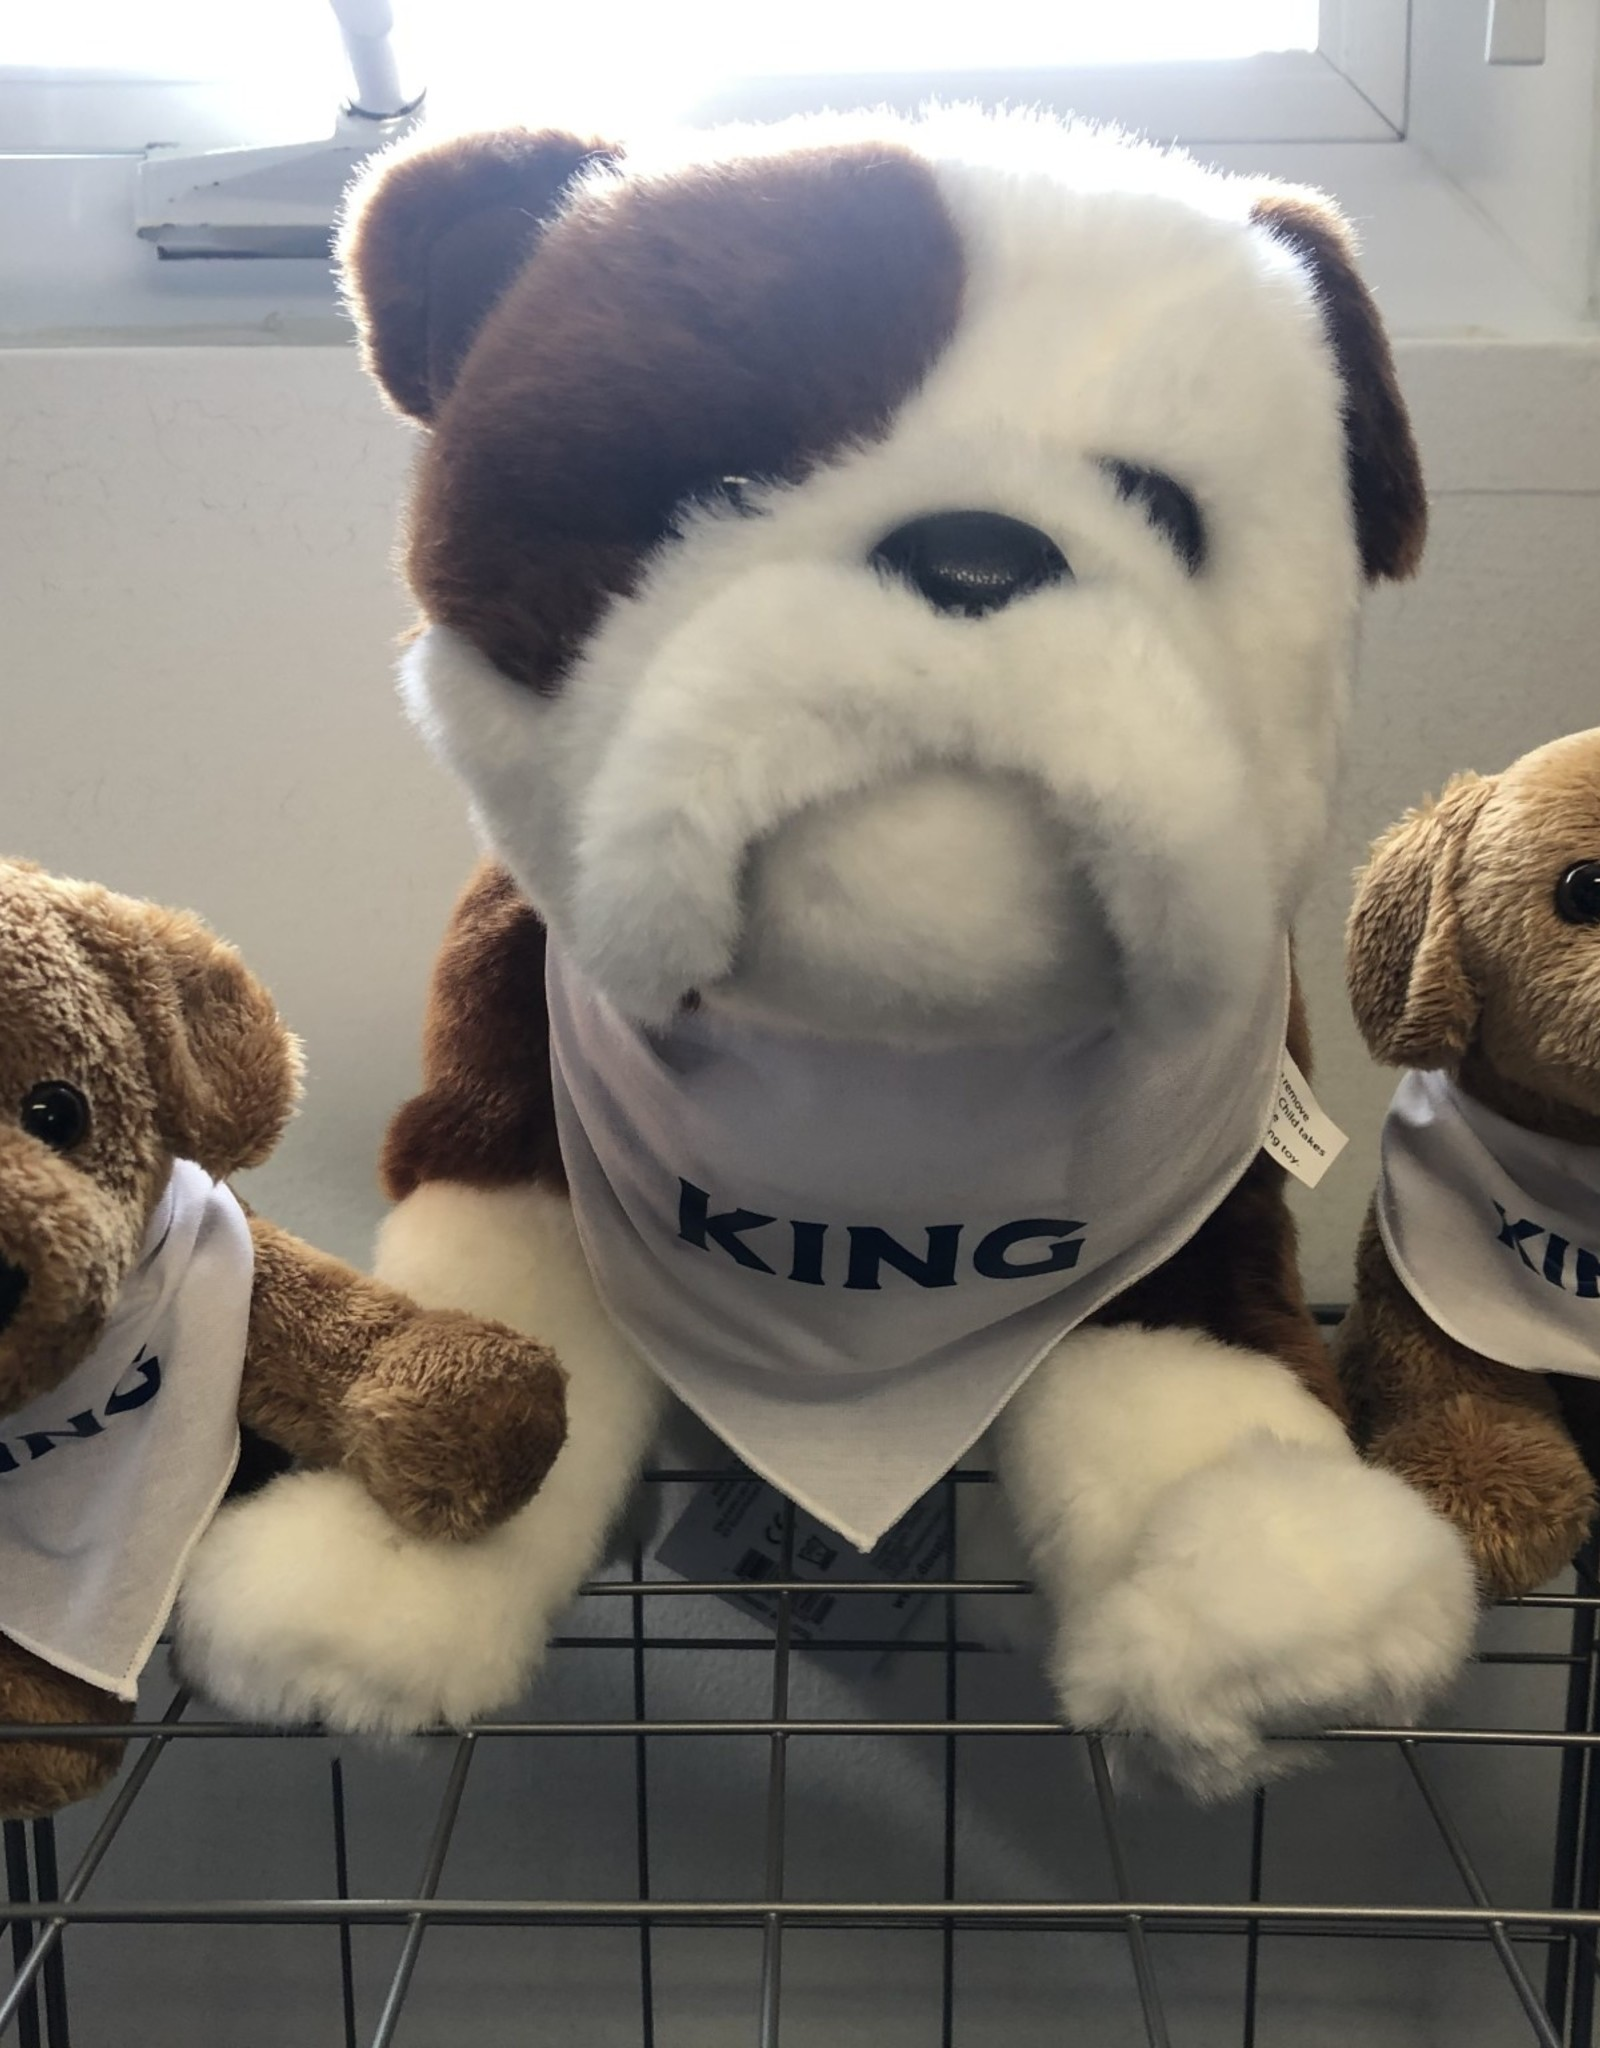 King Dogs